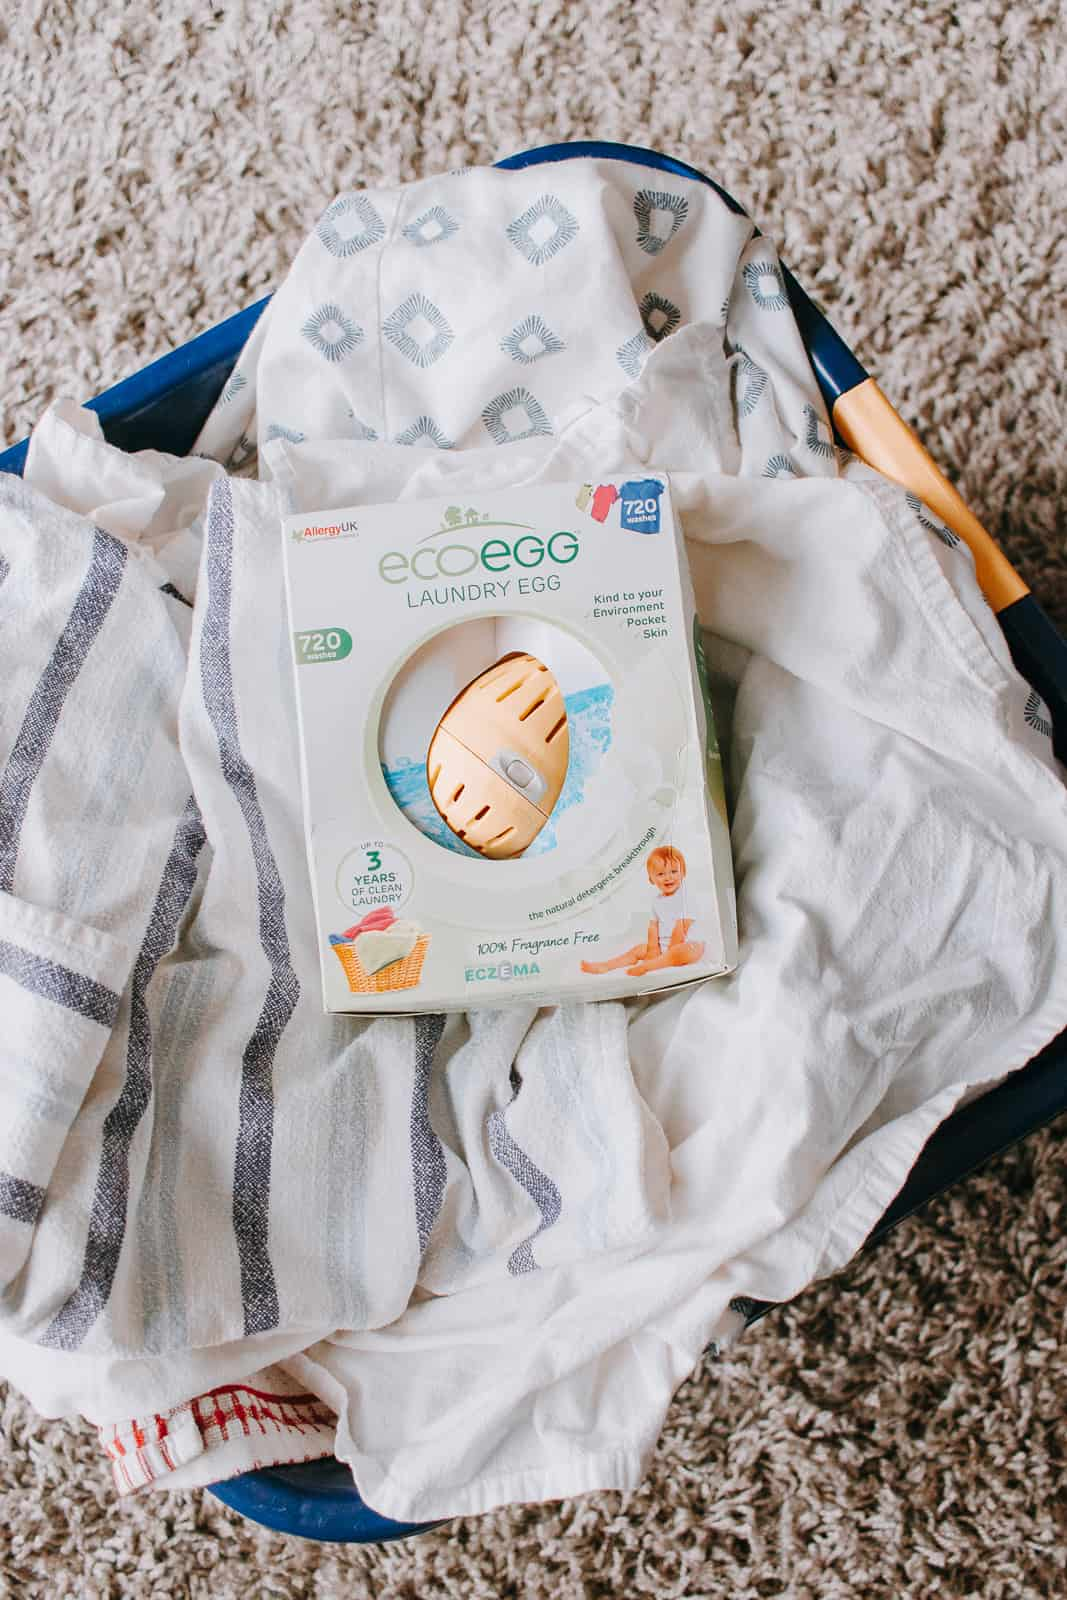 Ecoegg Laundry Egg Review with an HE machine #frugal #homemaking #laundry